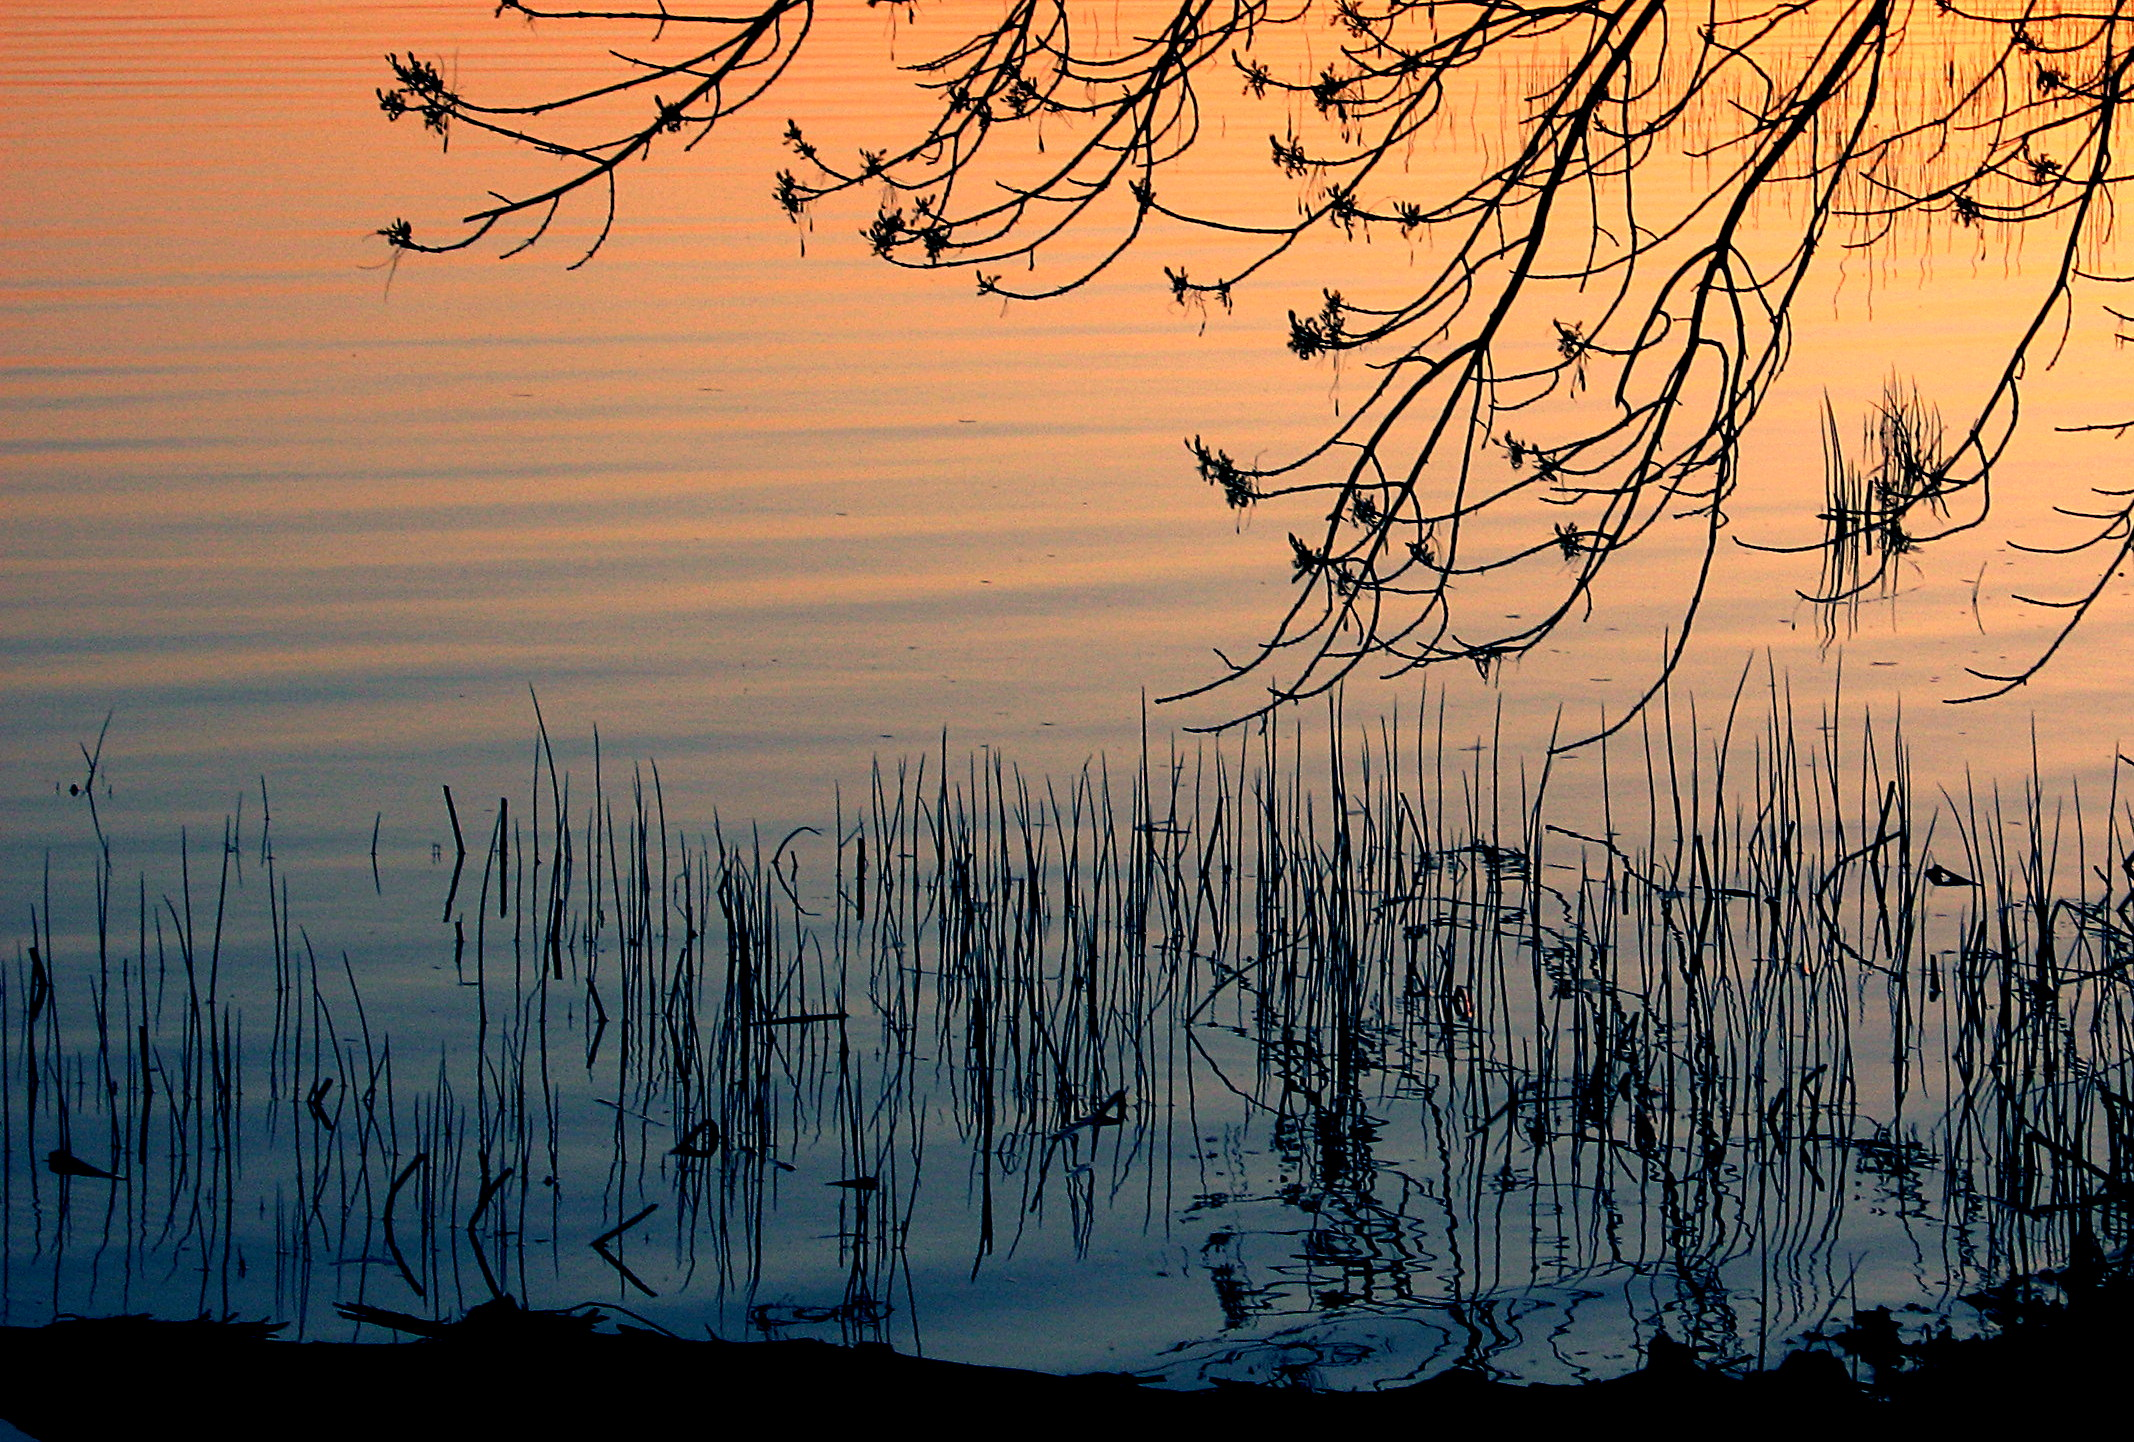 A sunset reflected in water.